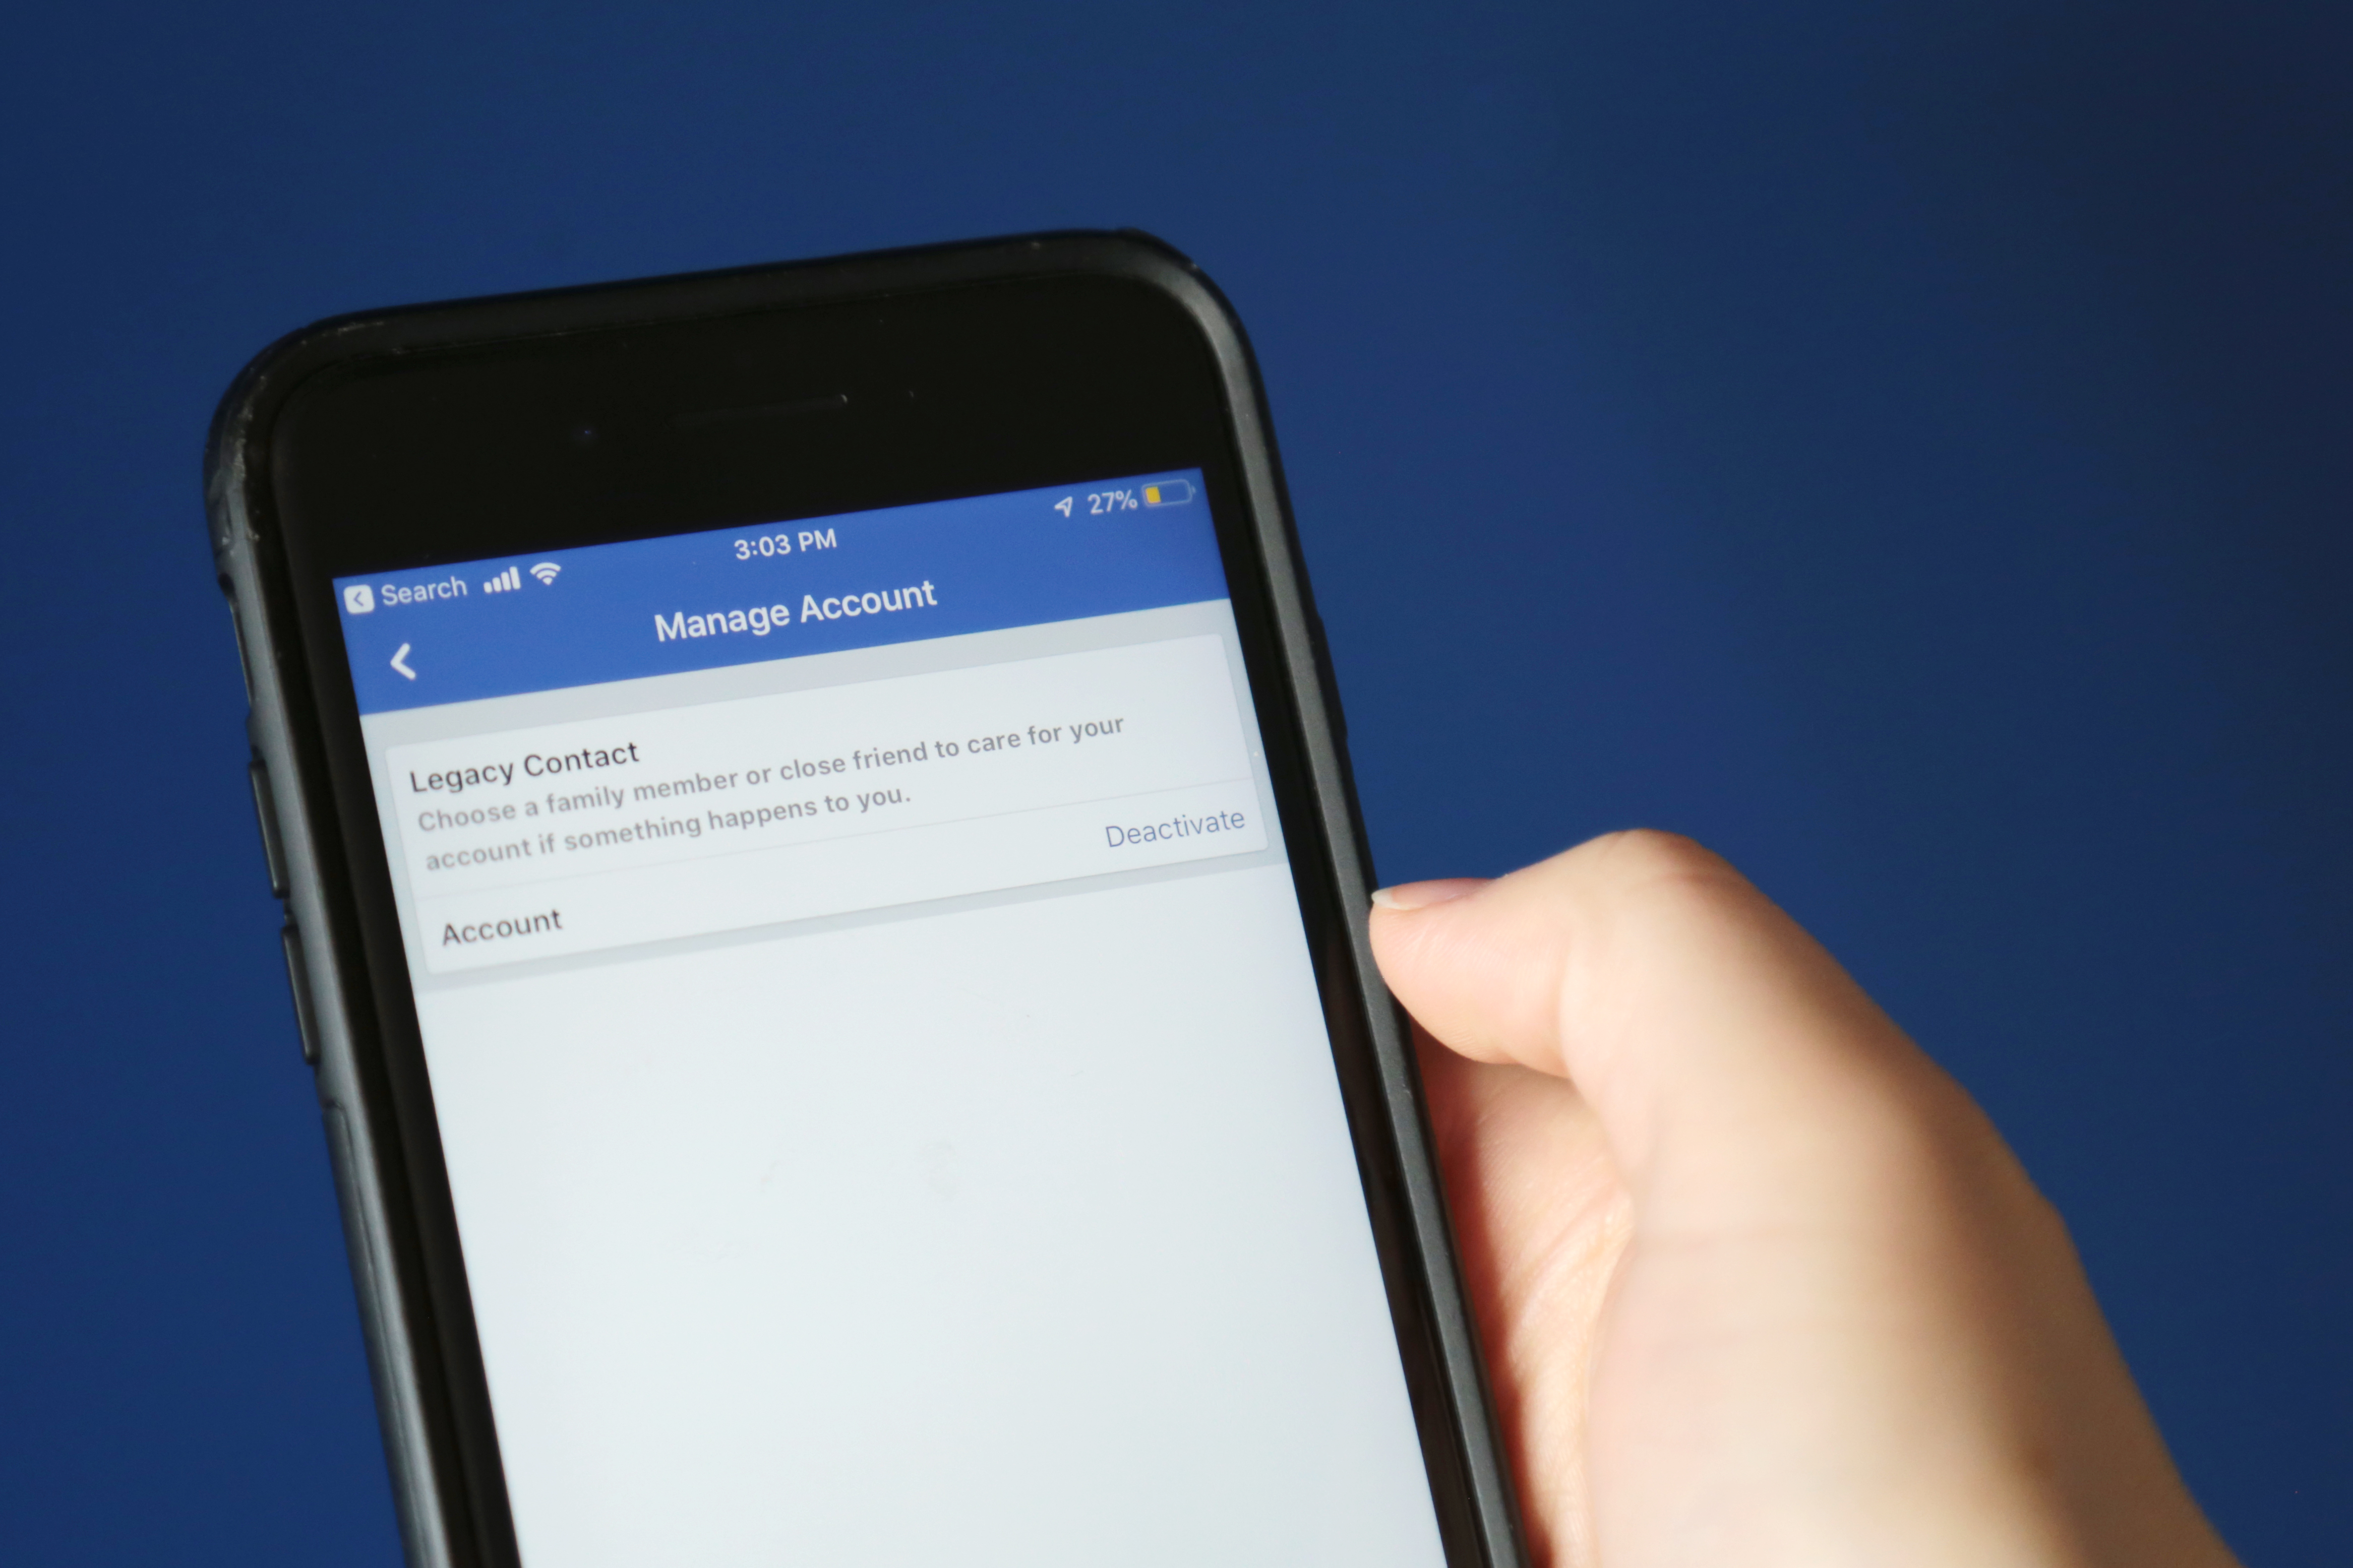 Photo of hand holding phone with Facebook app and Deactivate button showing